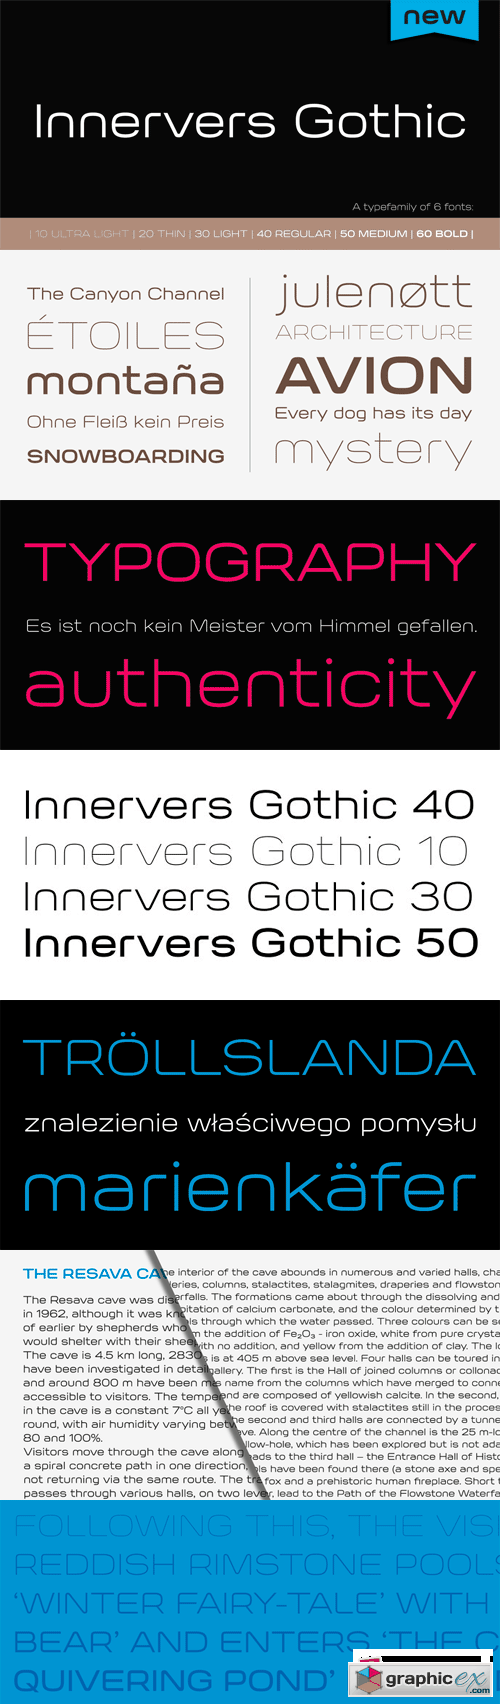 Innervers Gothic Font Family - 6 Fonts for $104